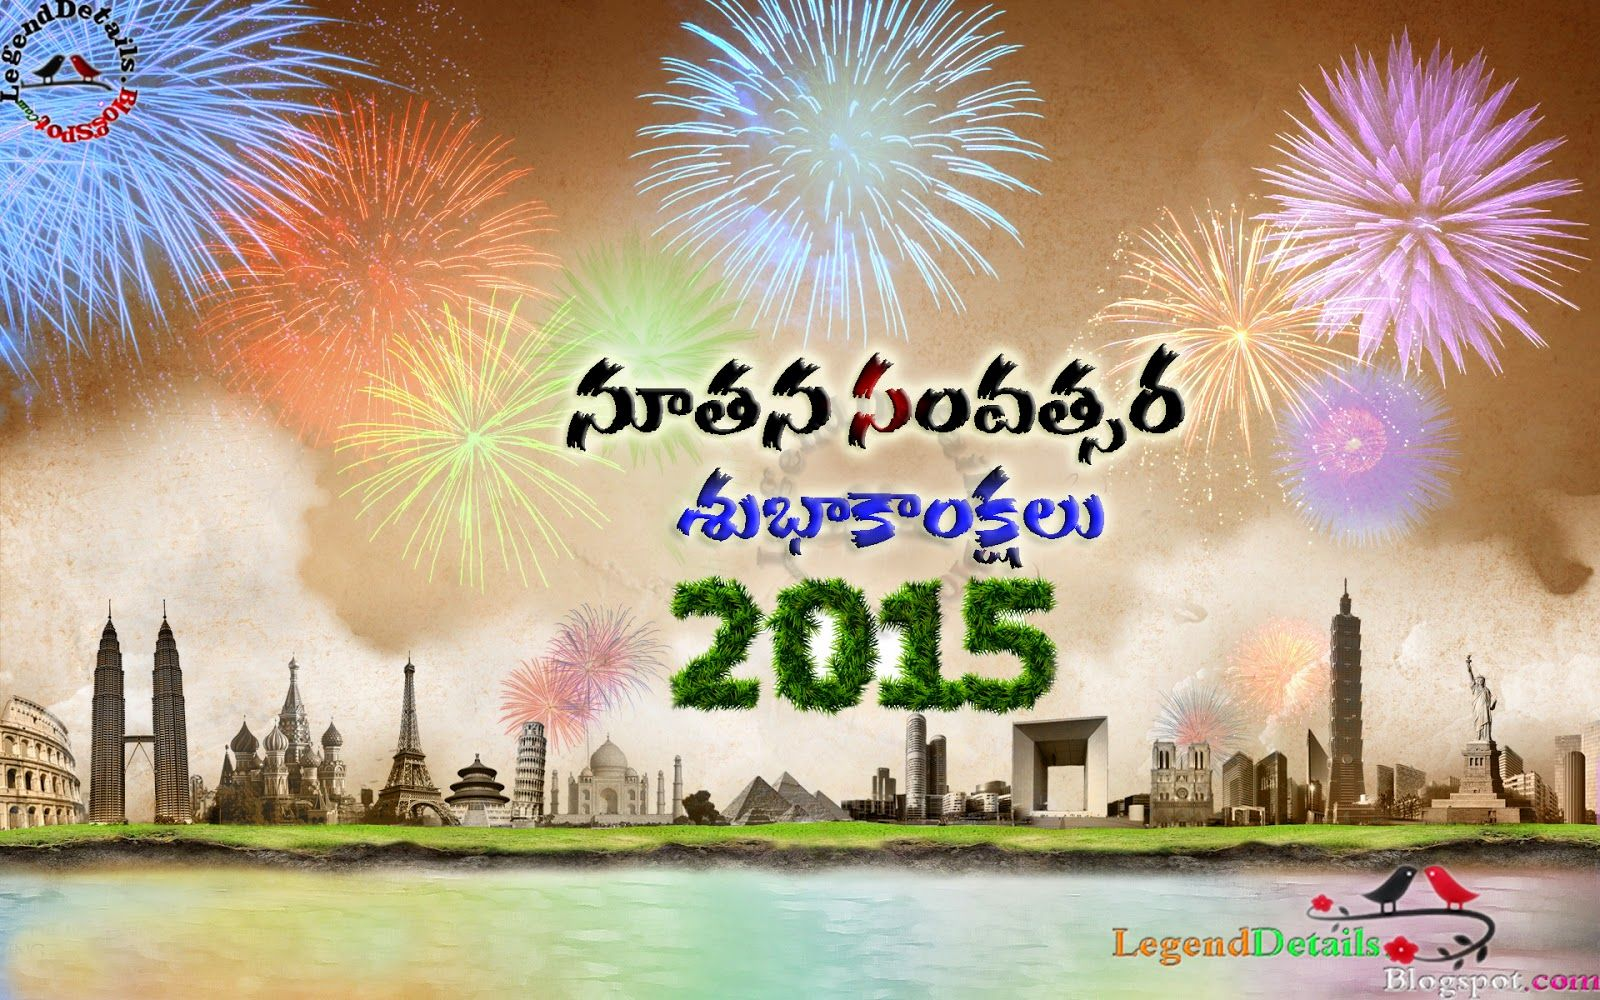 telugu new year greetings 2015 telugu happy new year wallpapers 2015 hd telugu new